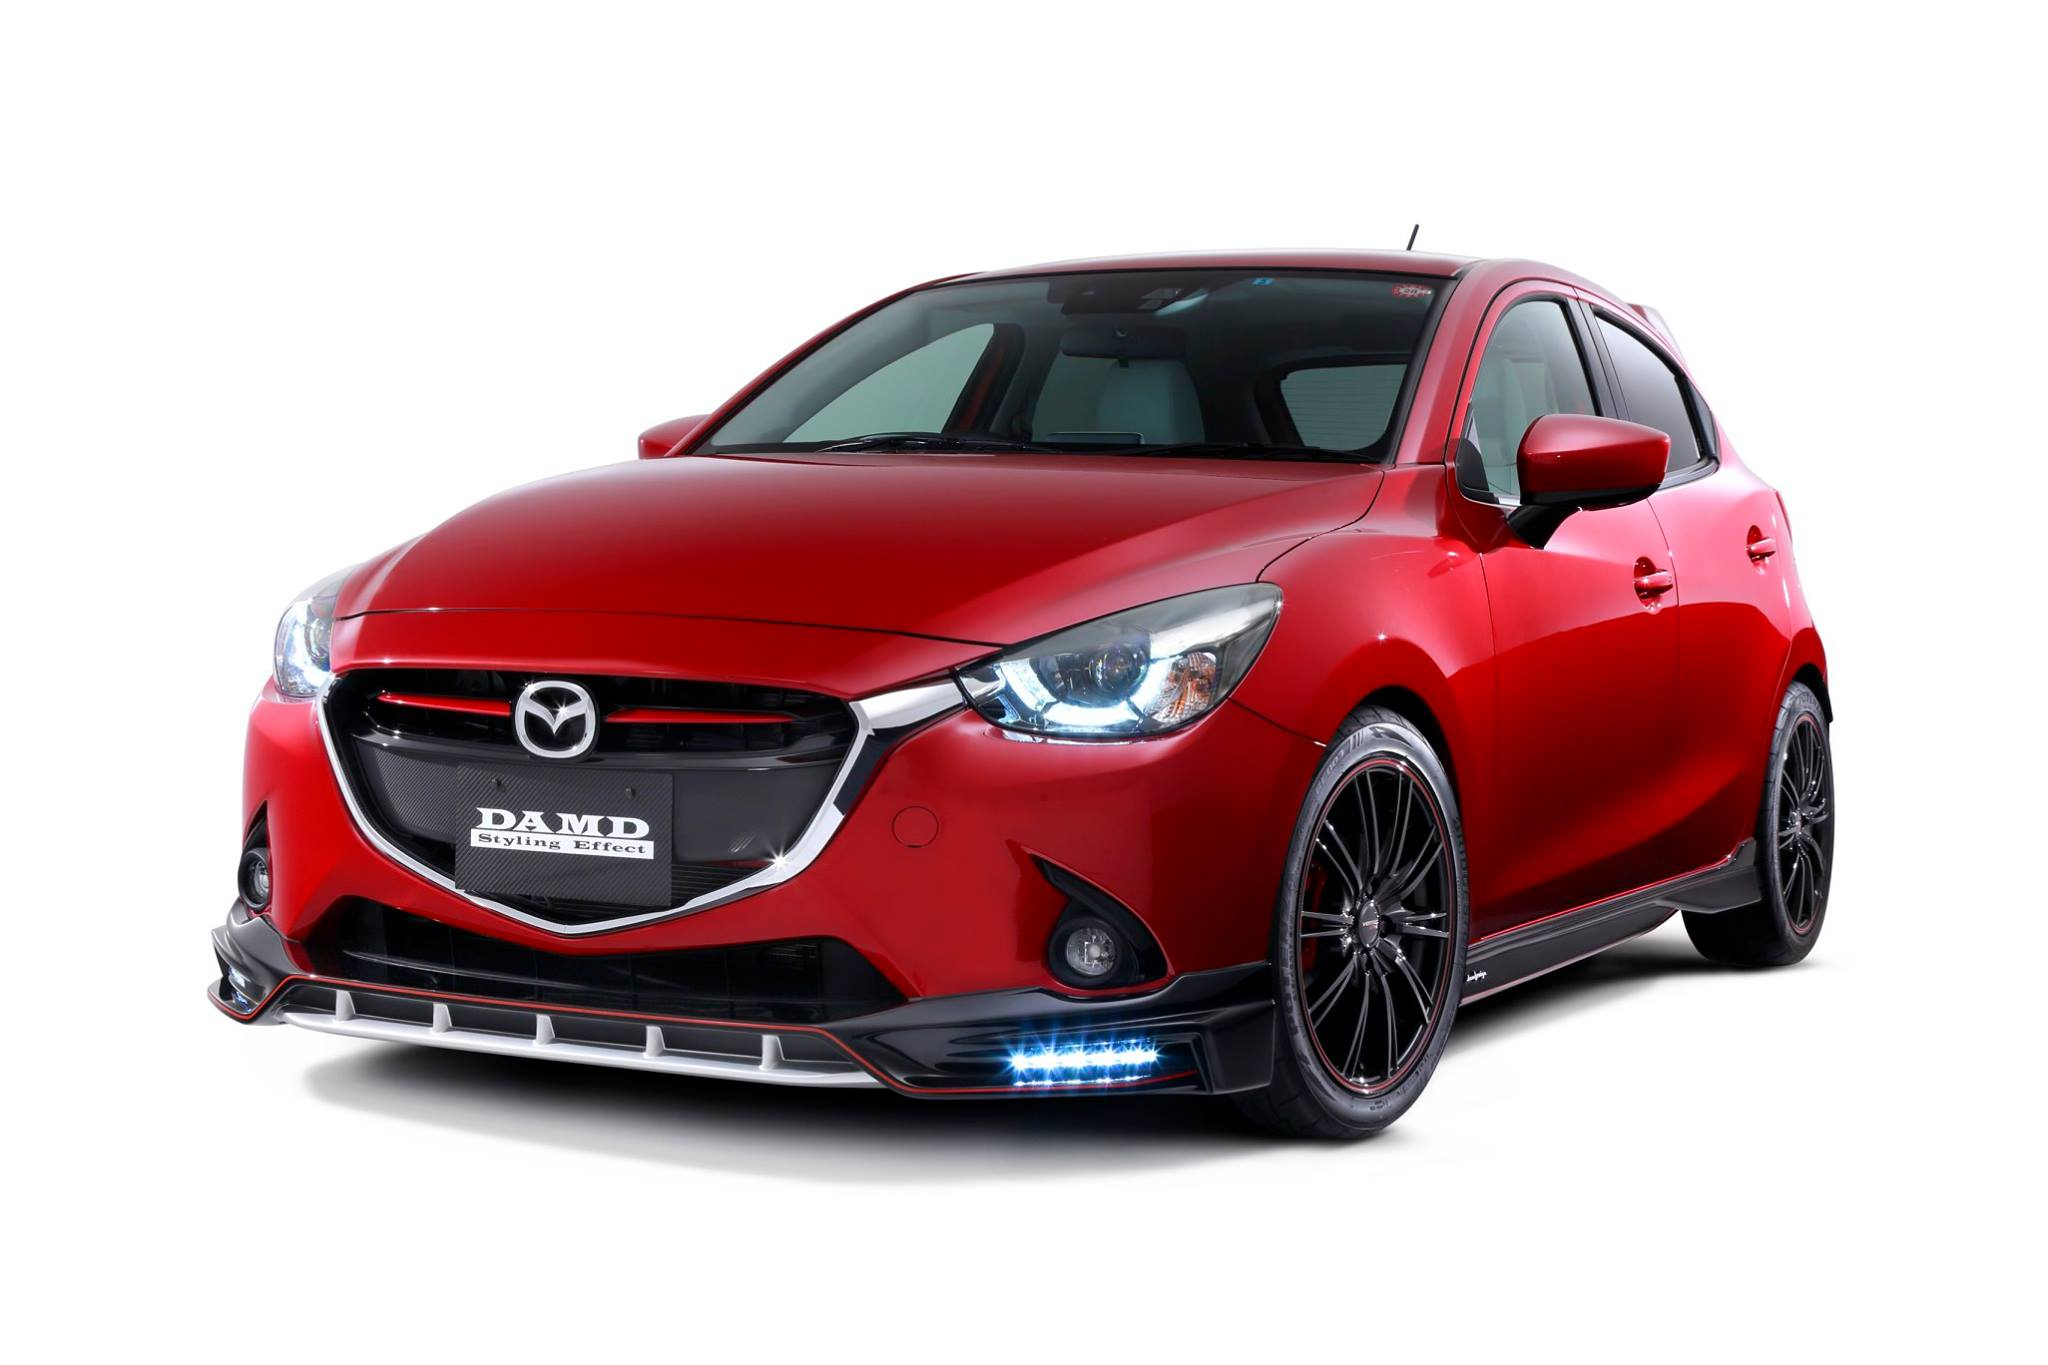 2016 Mazda2 And Cx 3 Get Aggressive Body Kits From Damd In